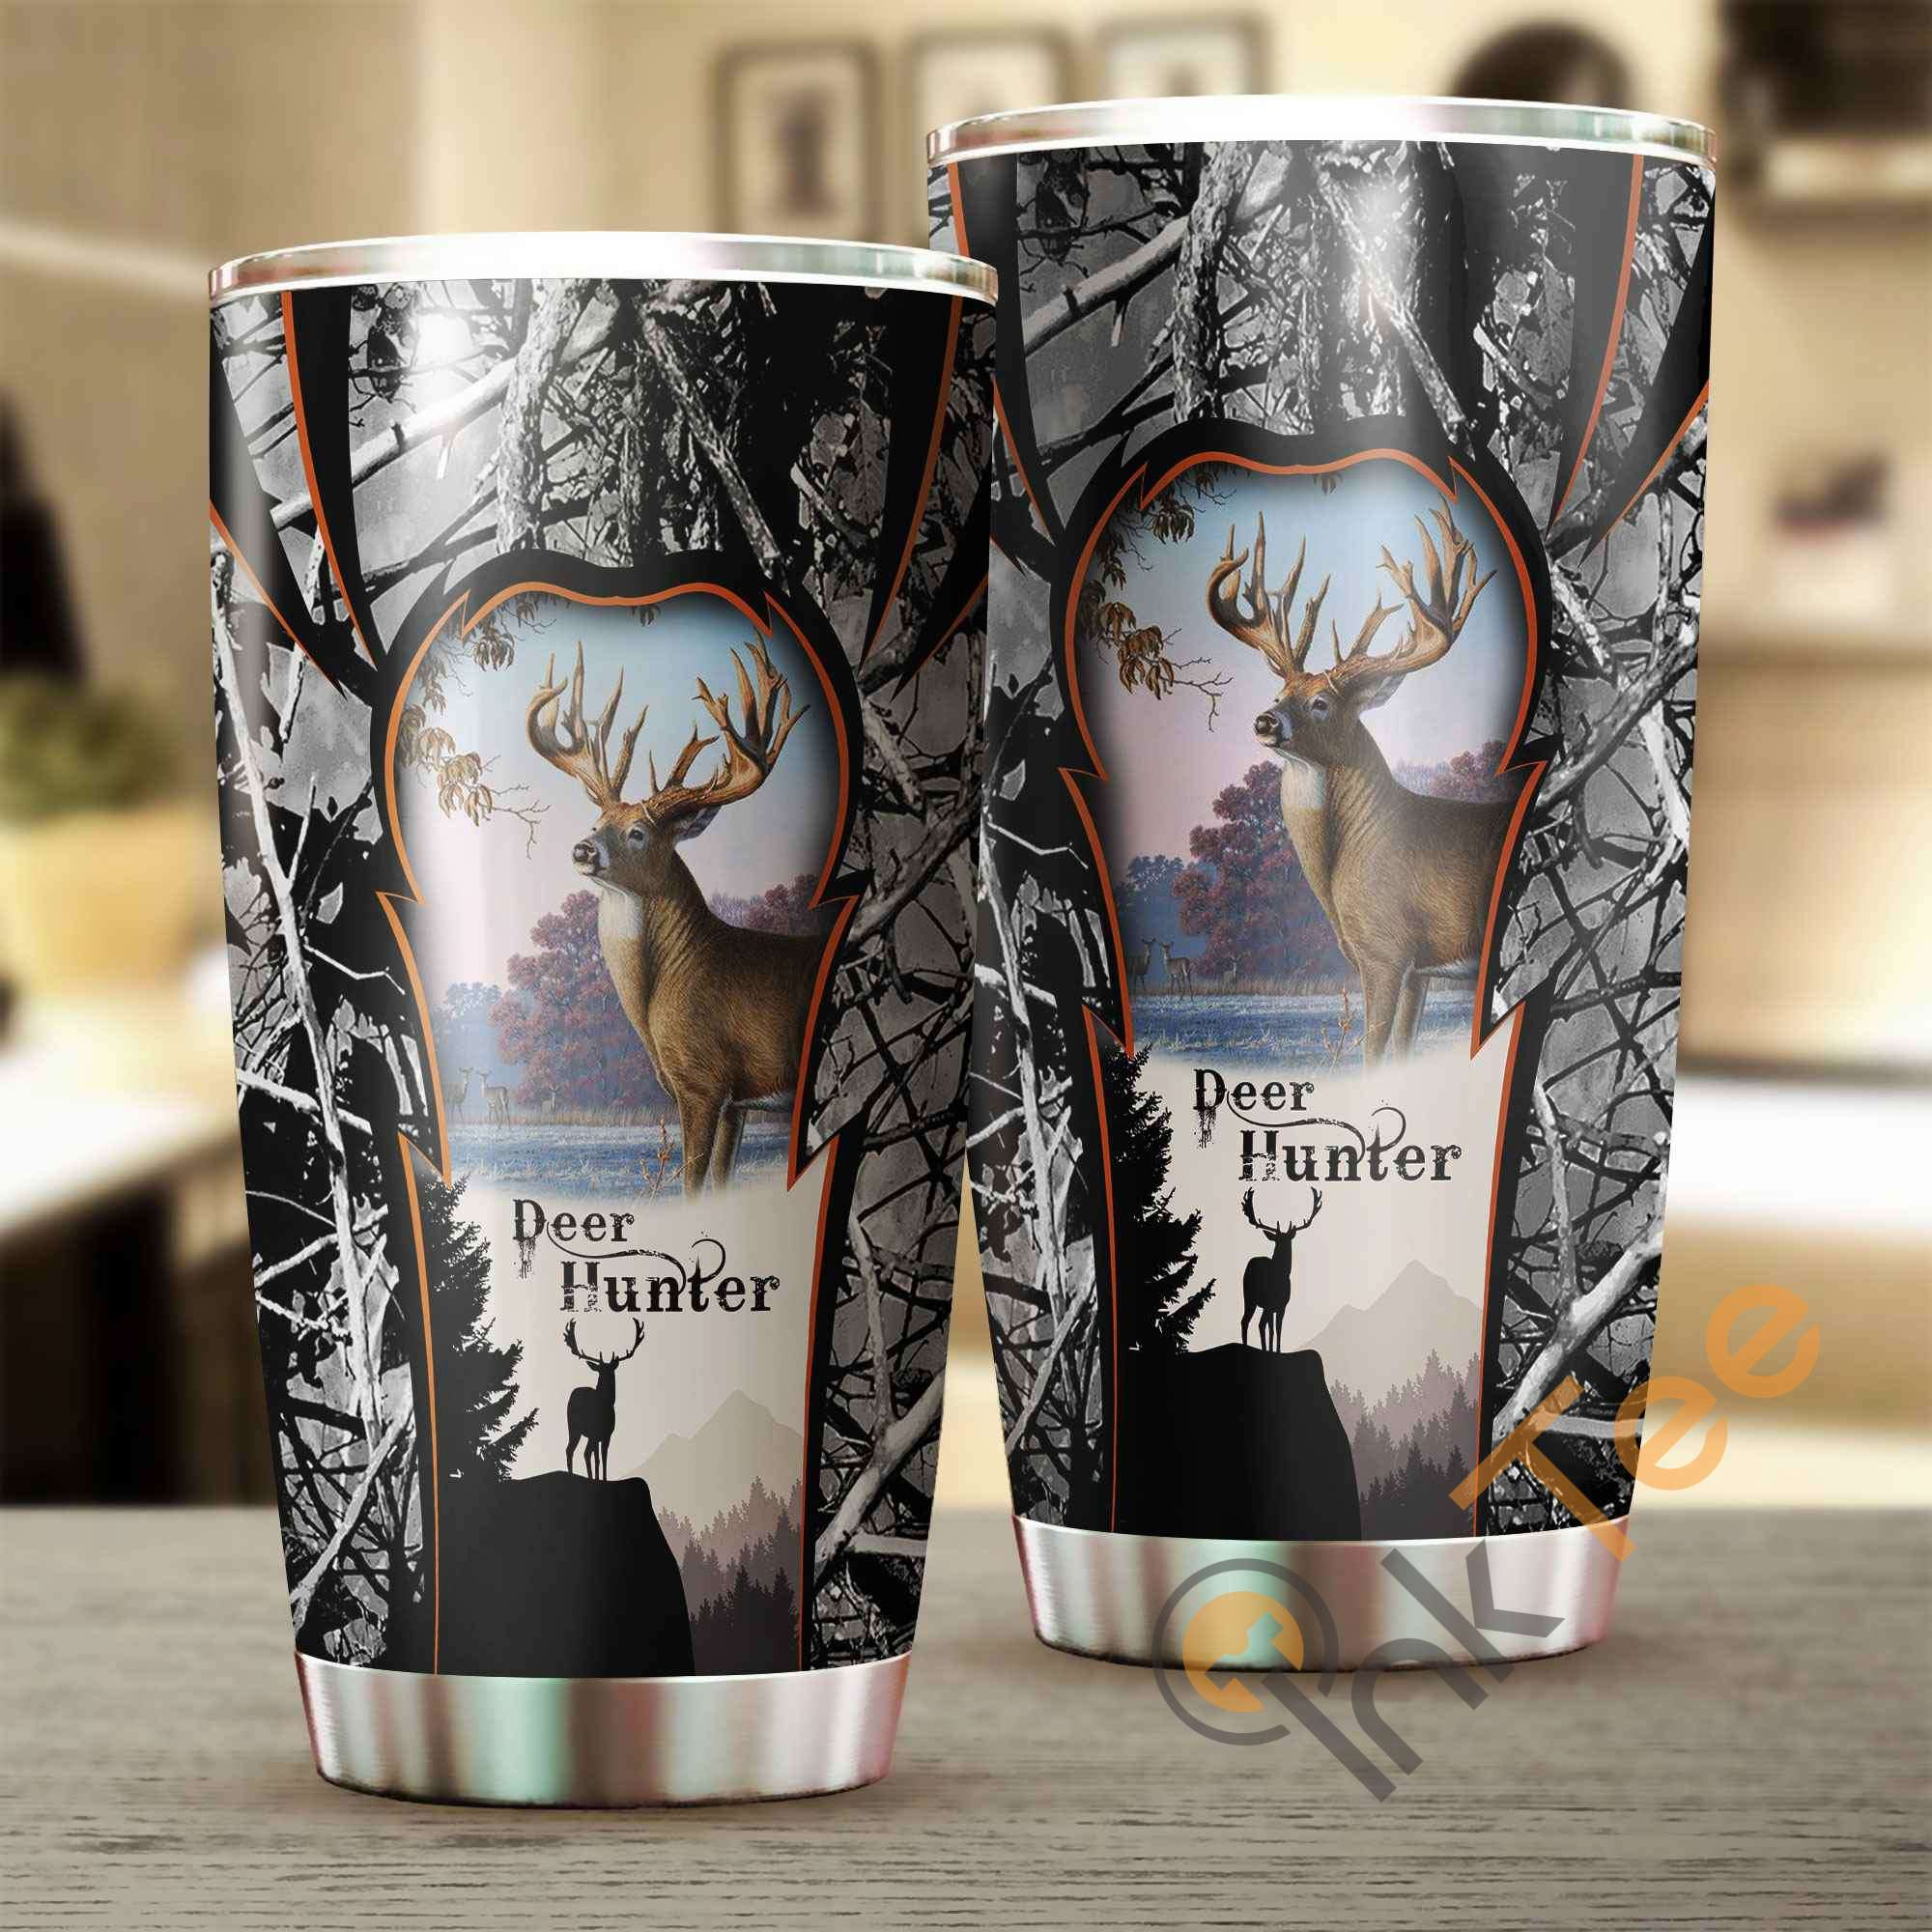 Beautiful Deer Hunting Camo Amazon Best Seller Sku 2632 Stainless Steel Tumbler